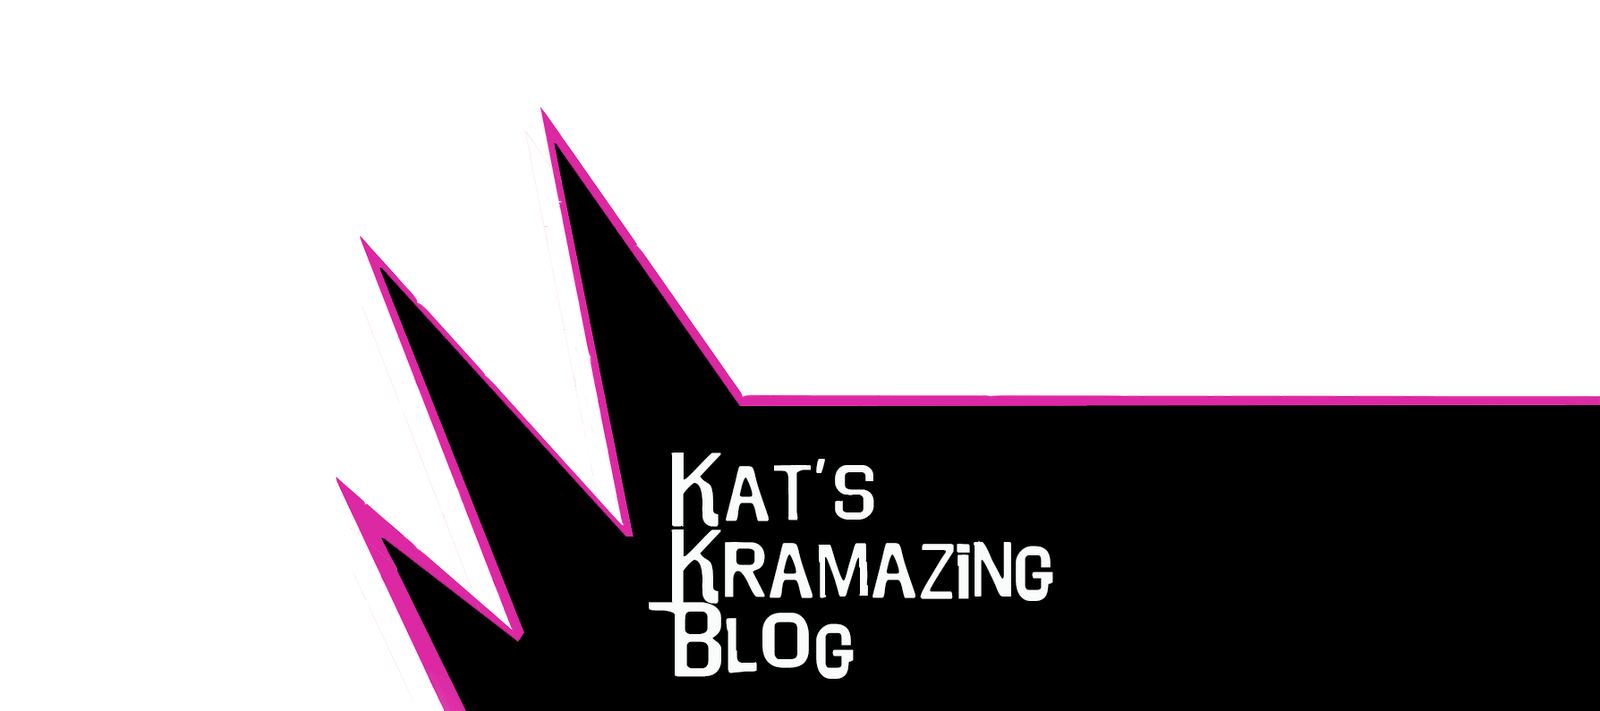 Kim and Kat's Kramazing Blog